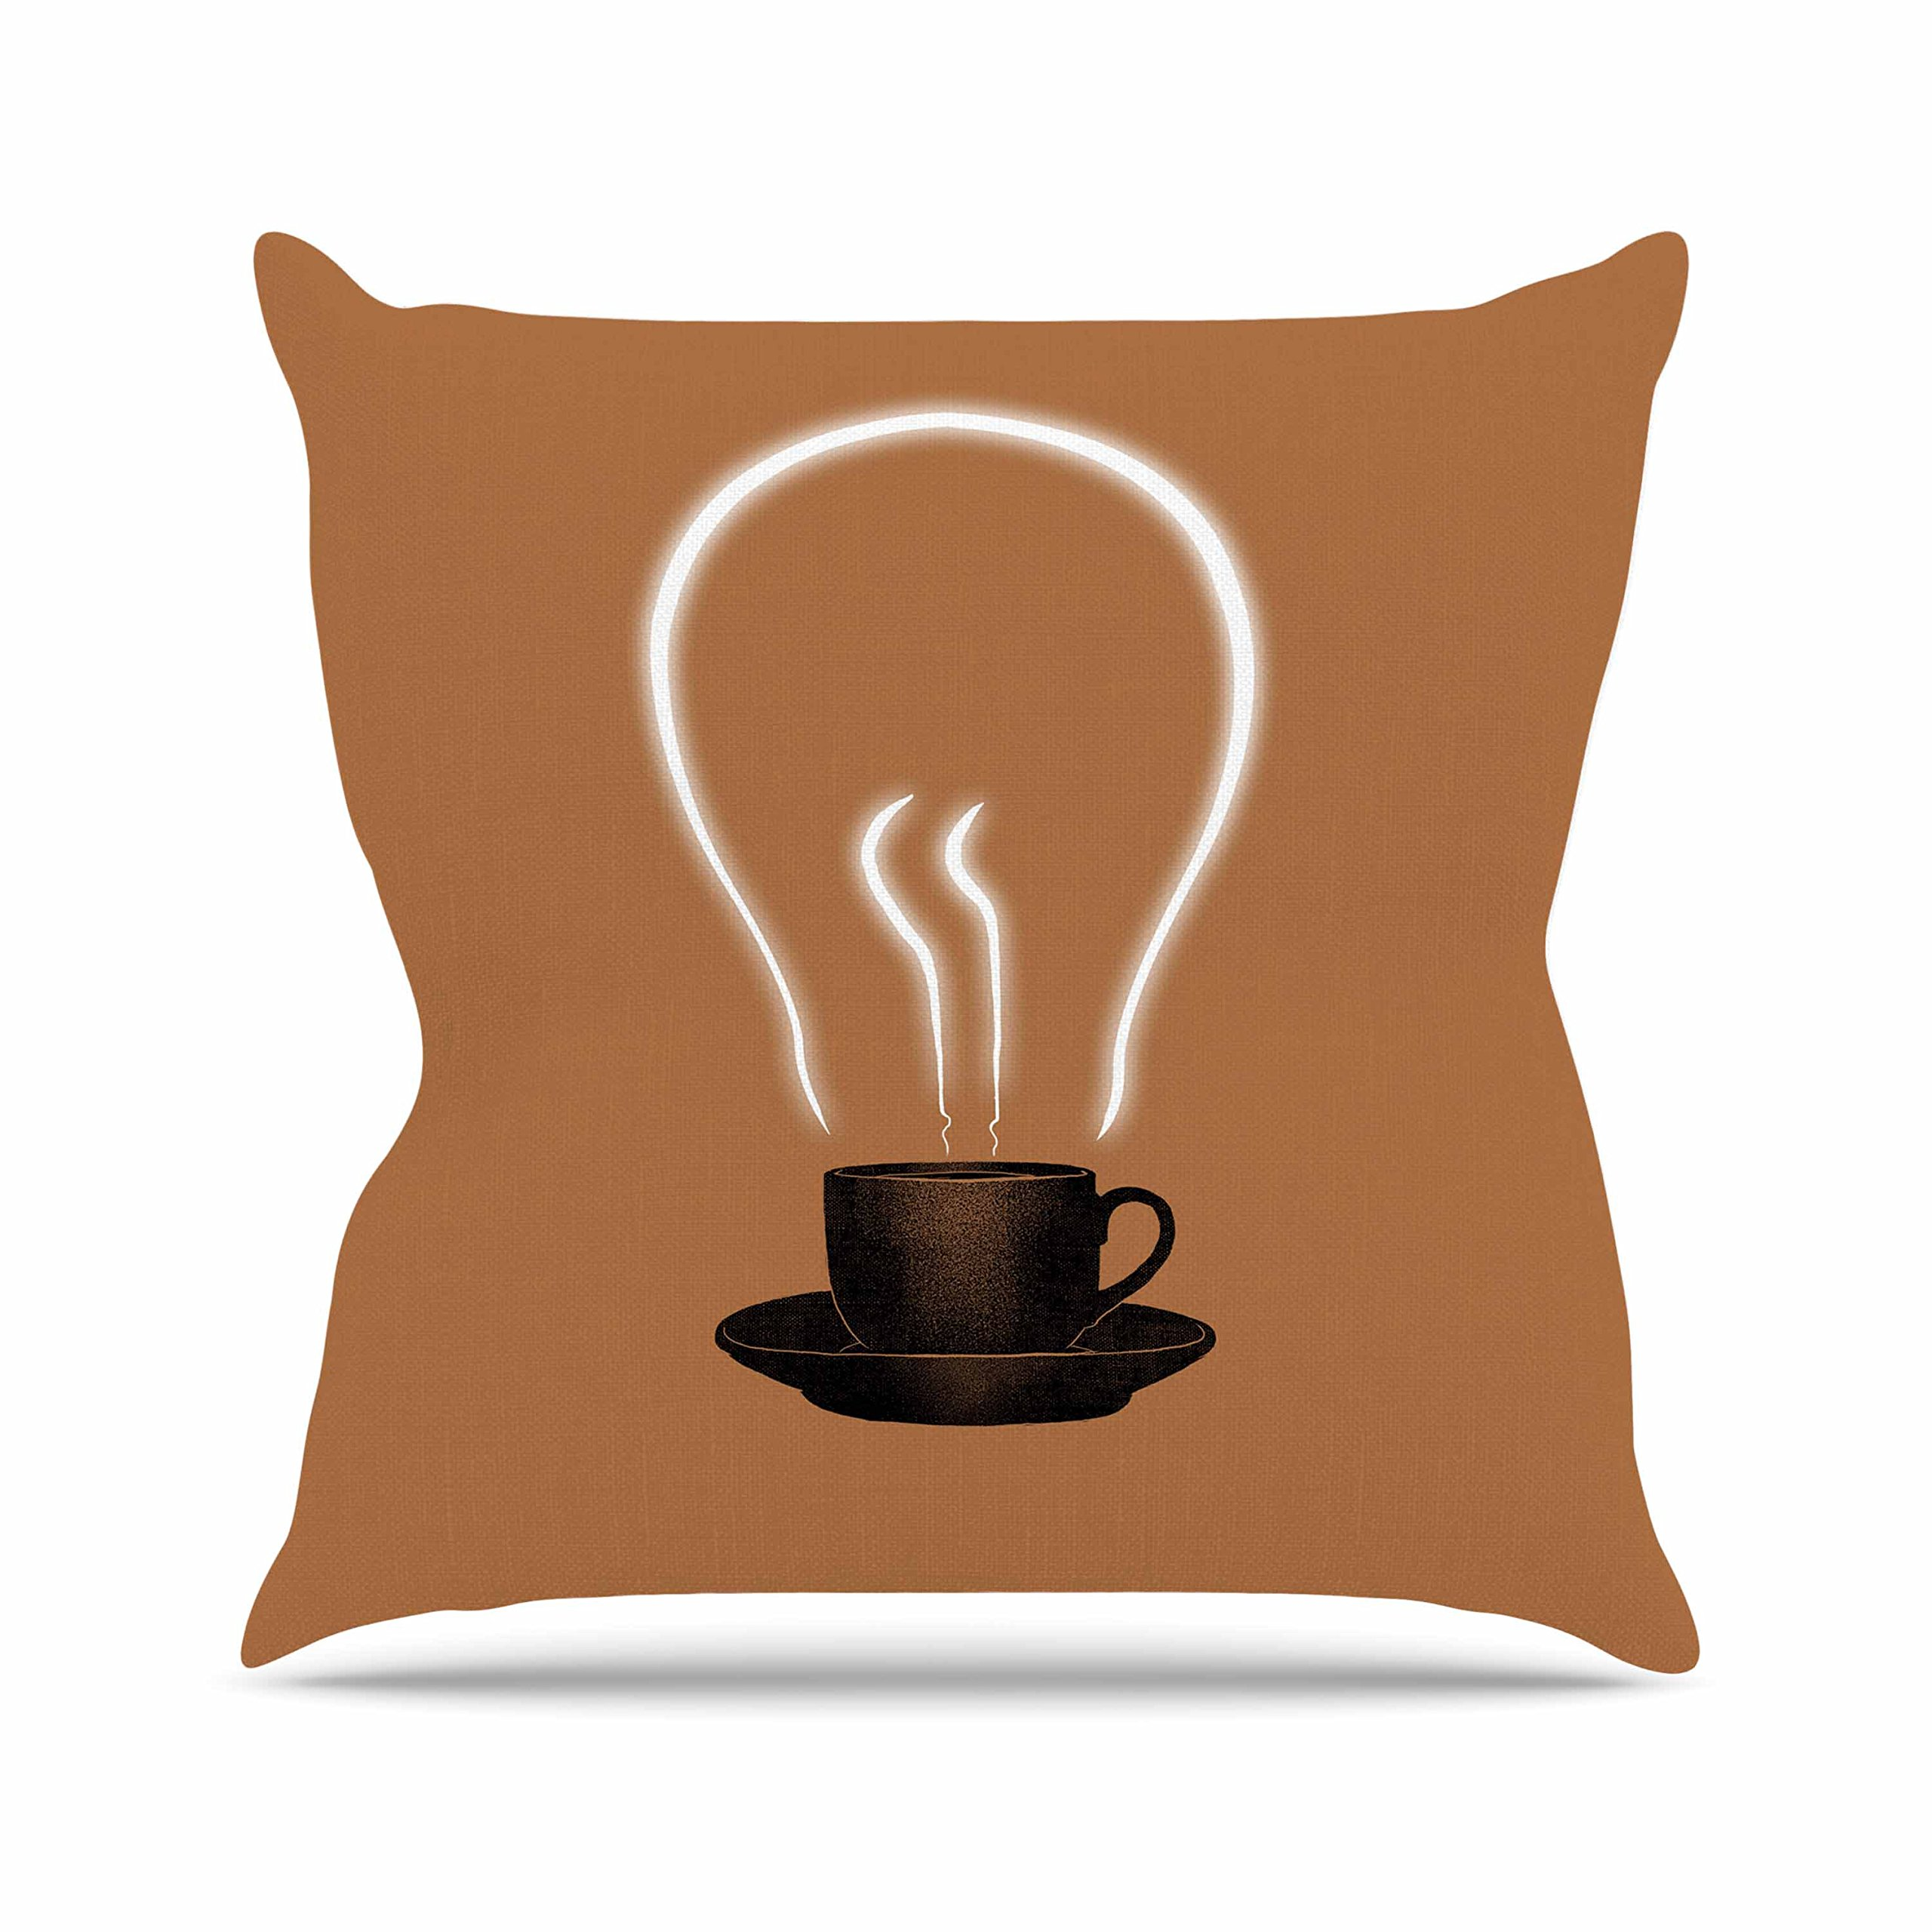 Kess InHouse Digital Carbine The Power Of Coffee Brown Food Outdoor Throw Pillow, 16'' x 16''